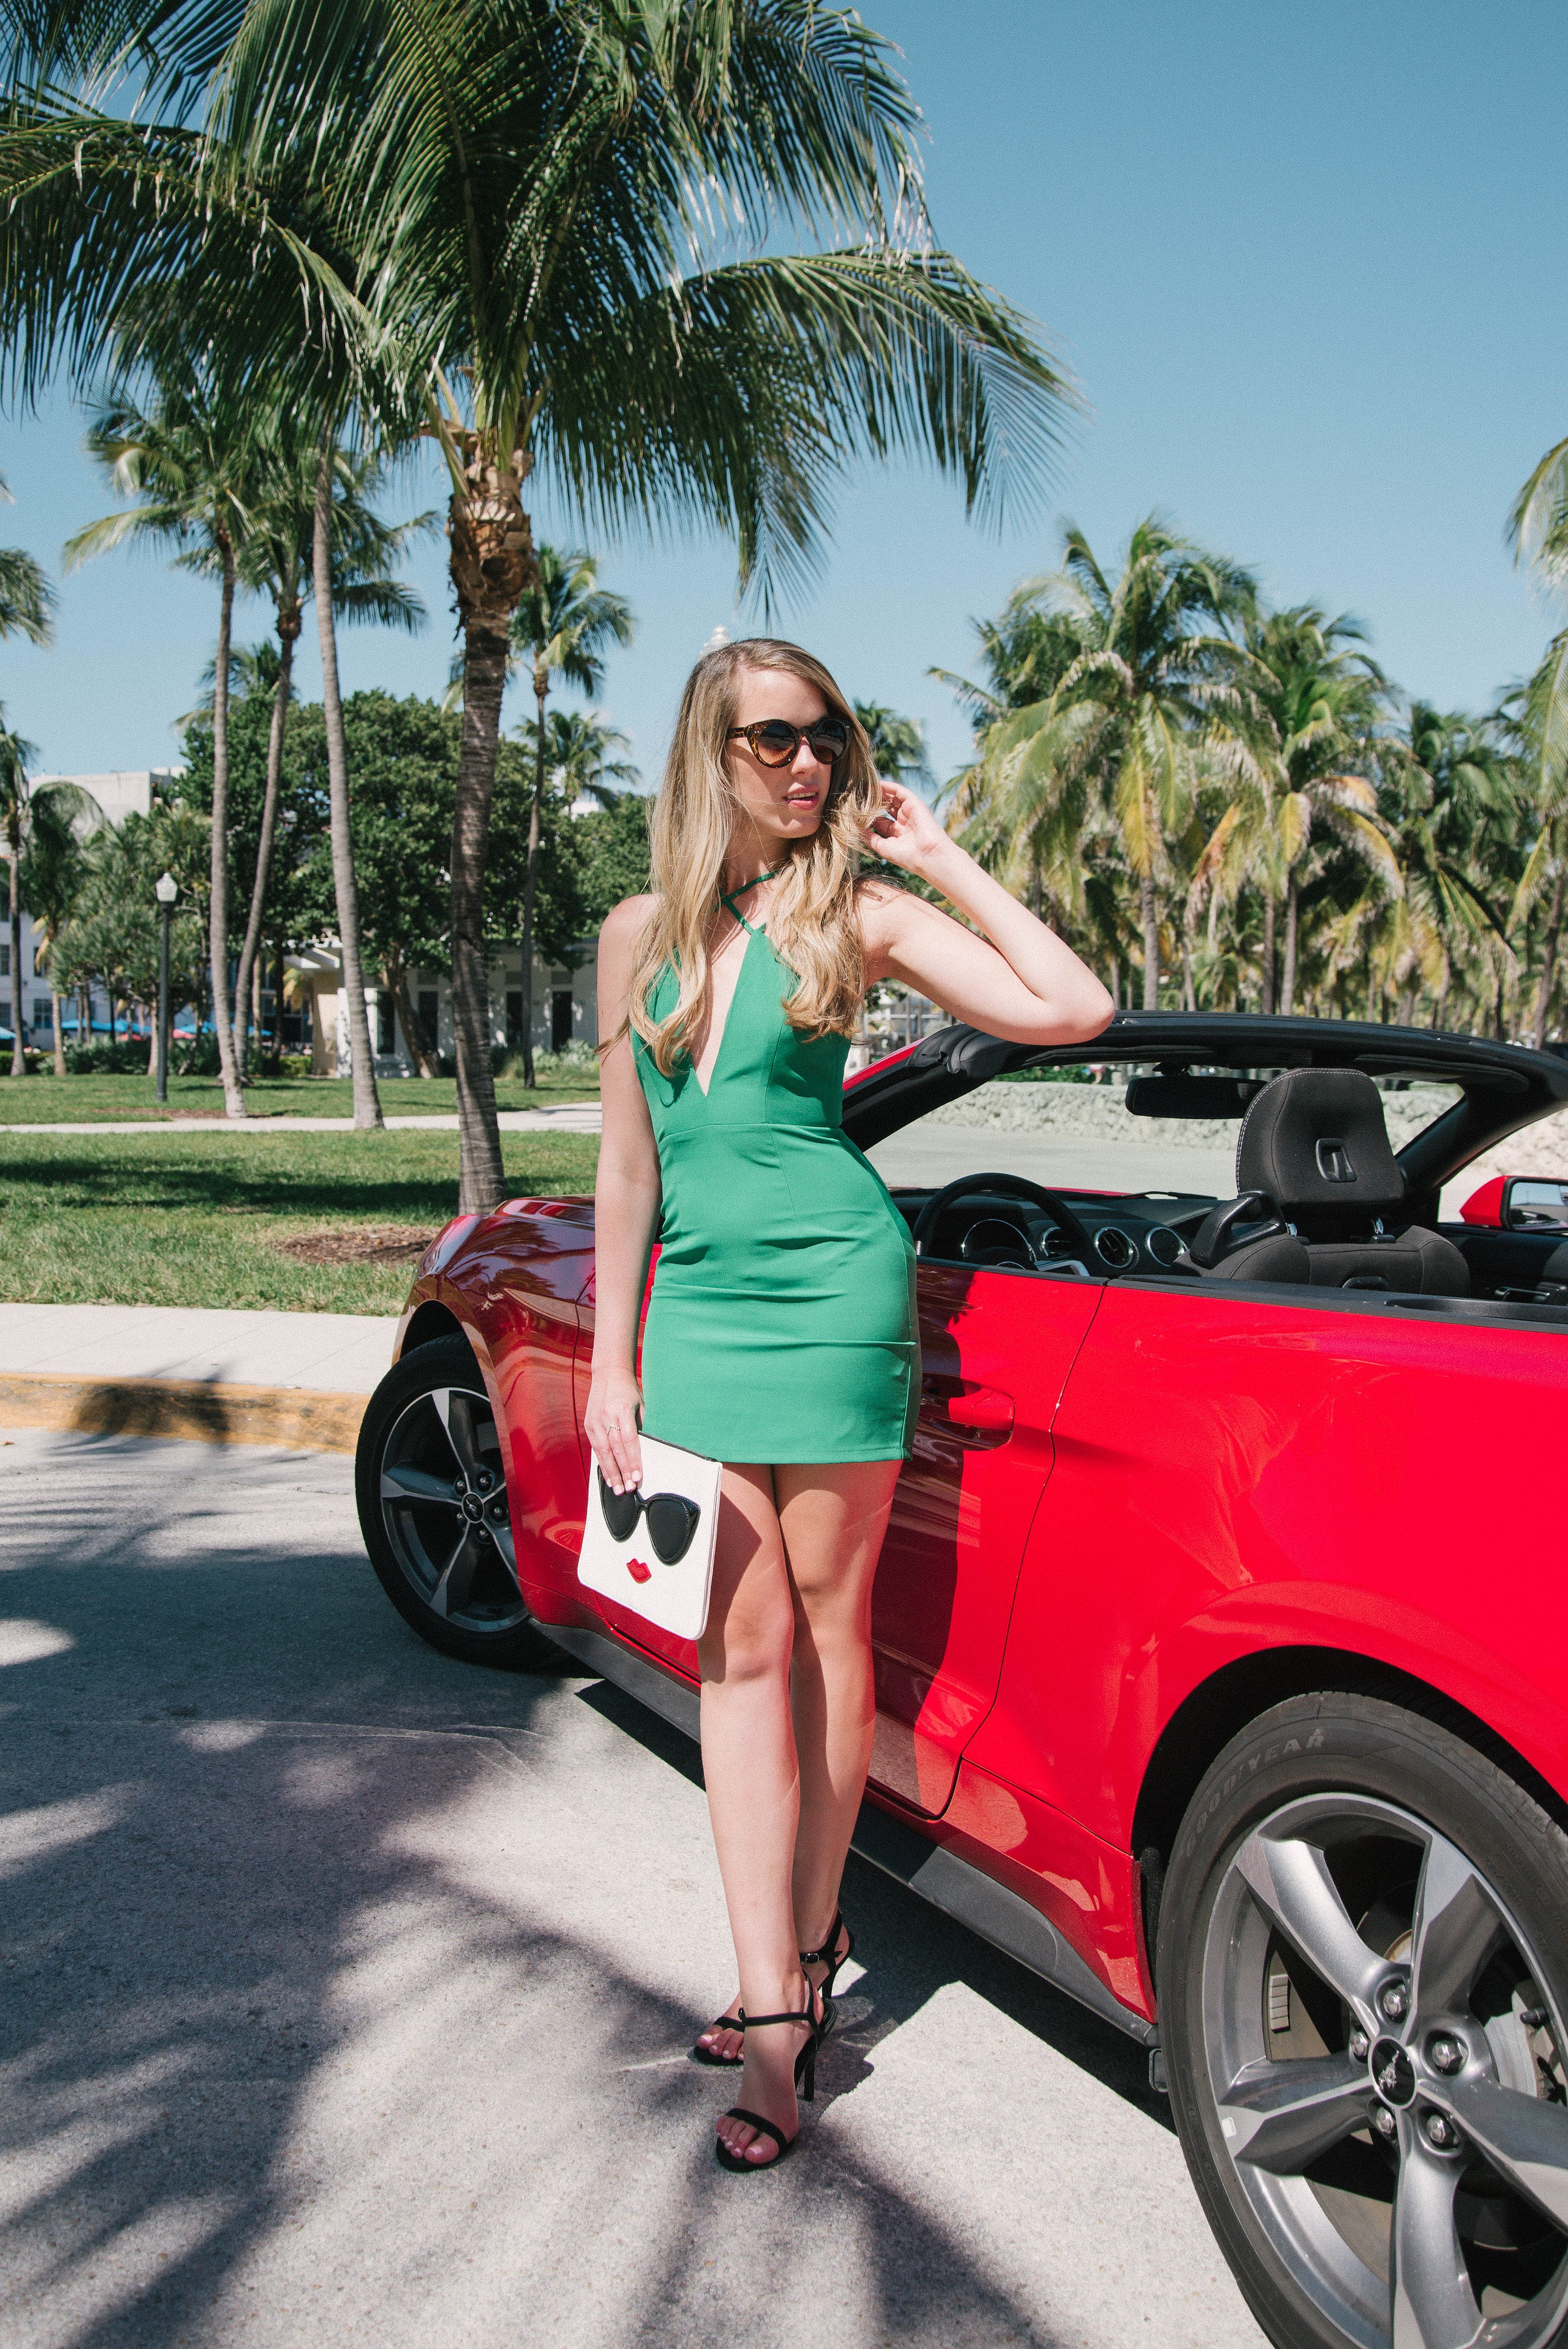 Miami standing near a red ford mustang